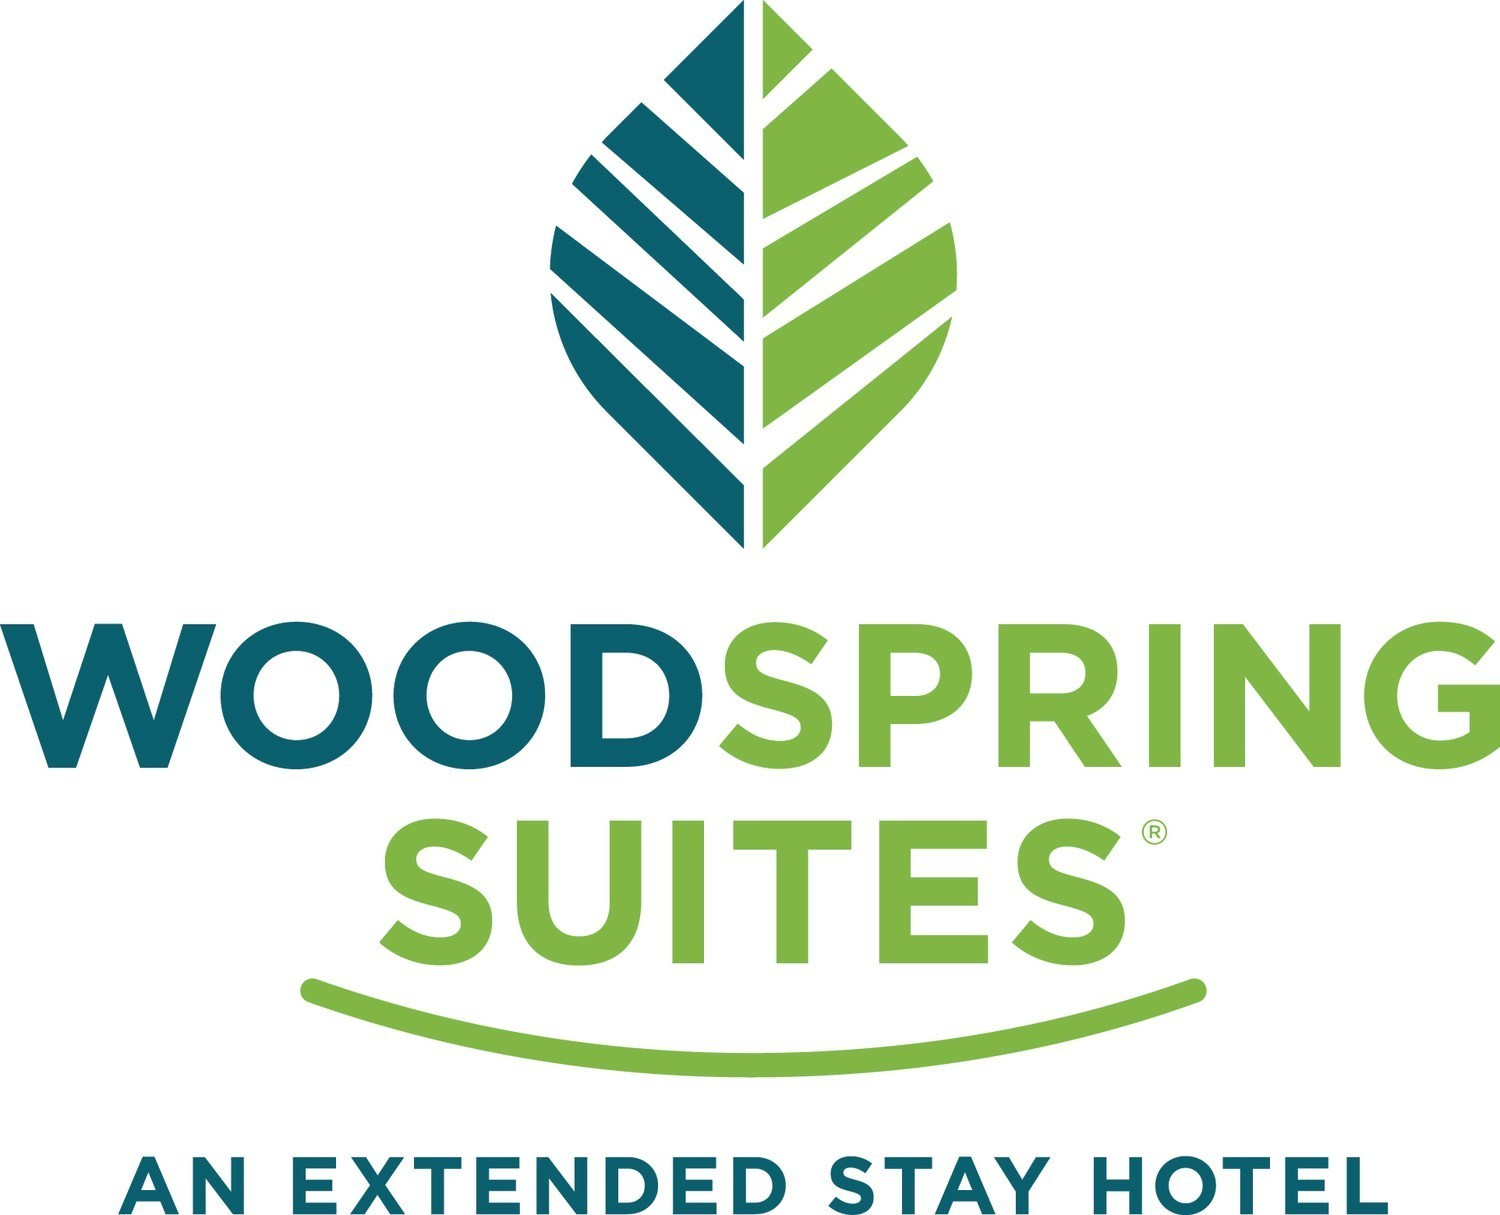 Choice hotels completes acquisition of woodspring suites for Choice hotels